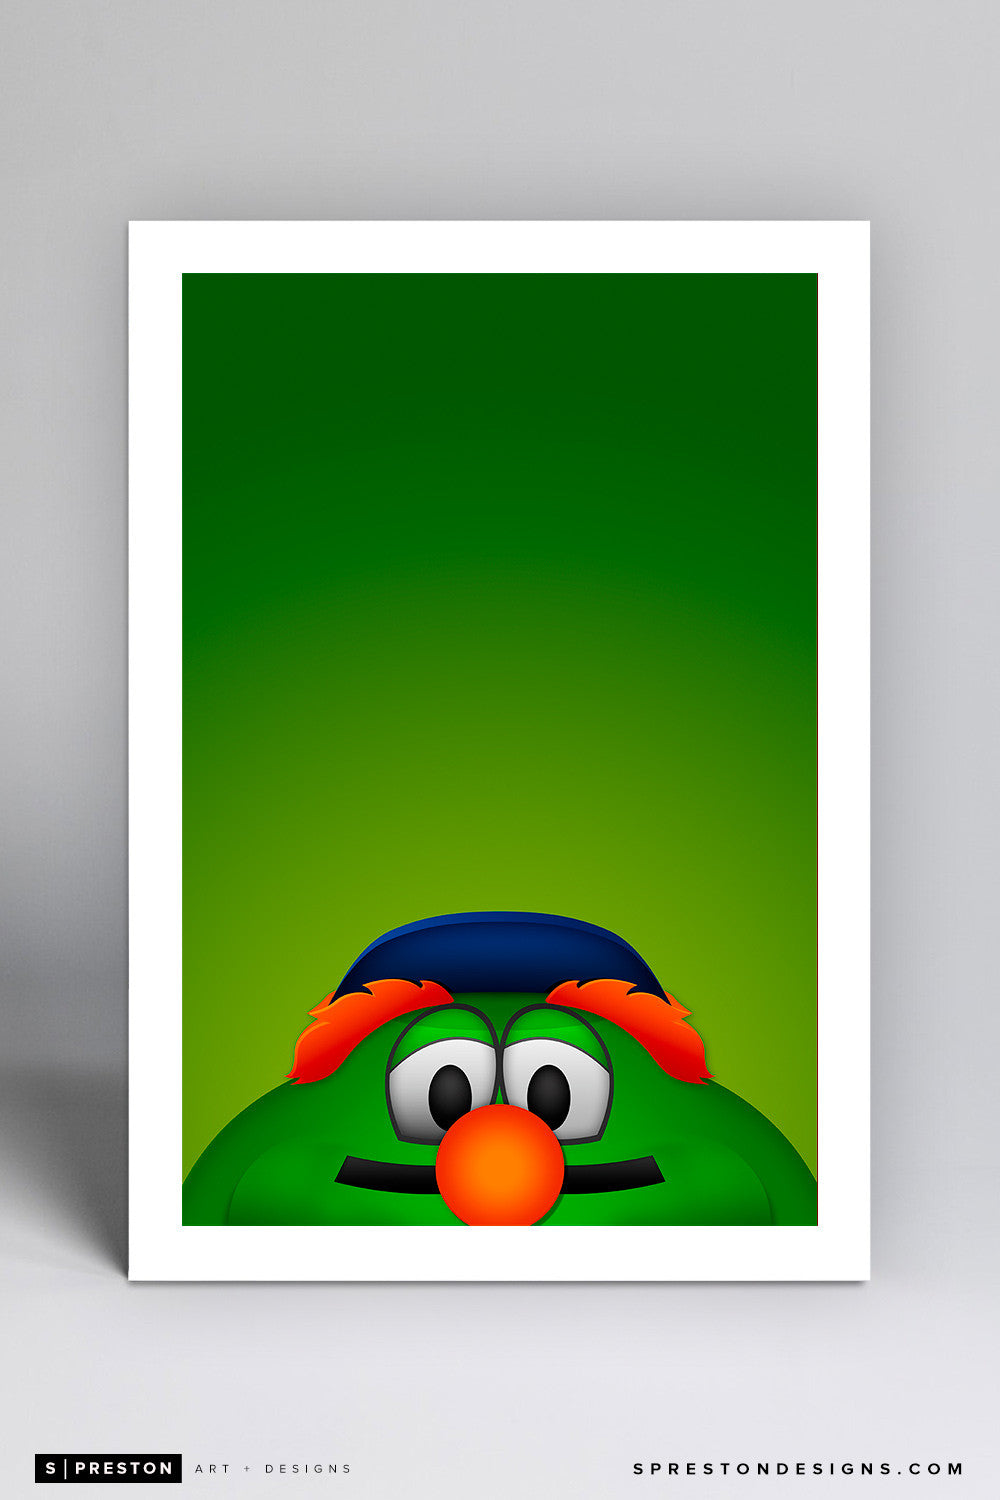 Minimalist Wally the Green Monster - Boston Red Sox - S. Preston